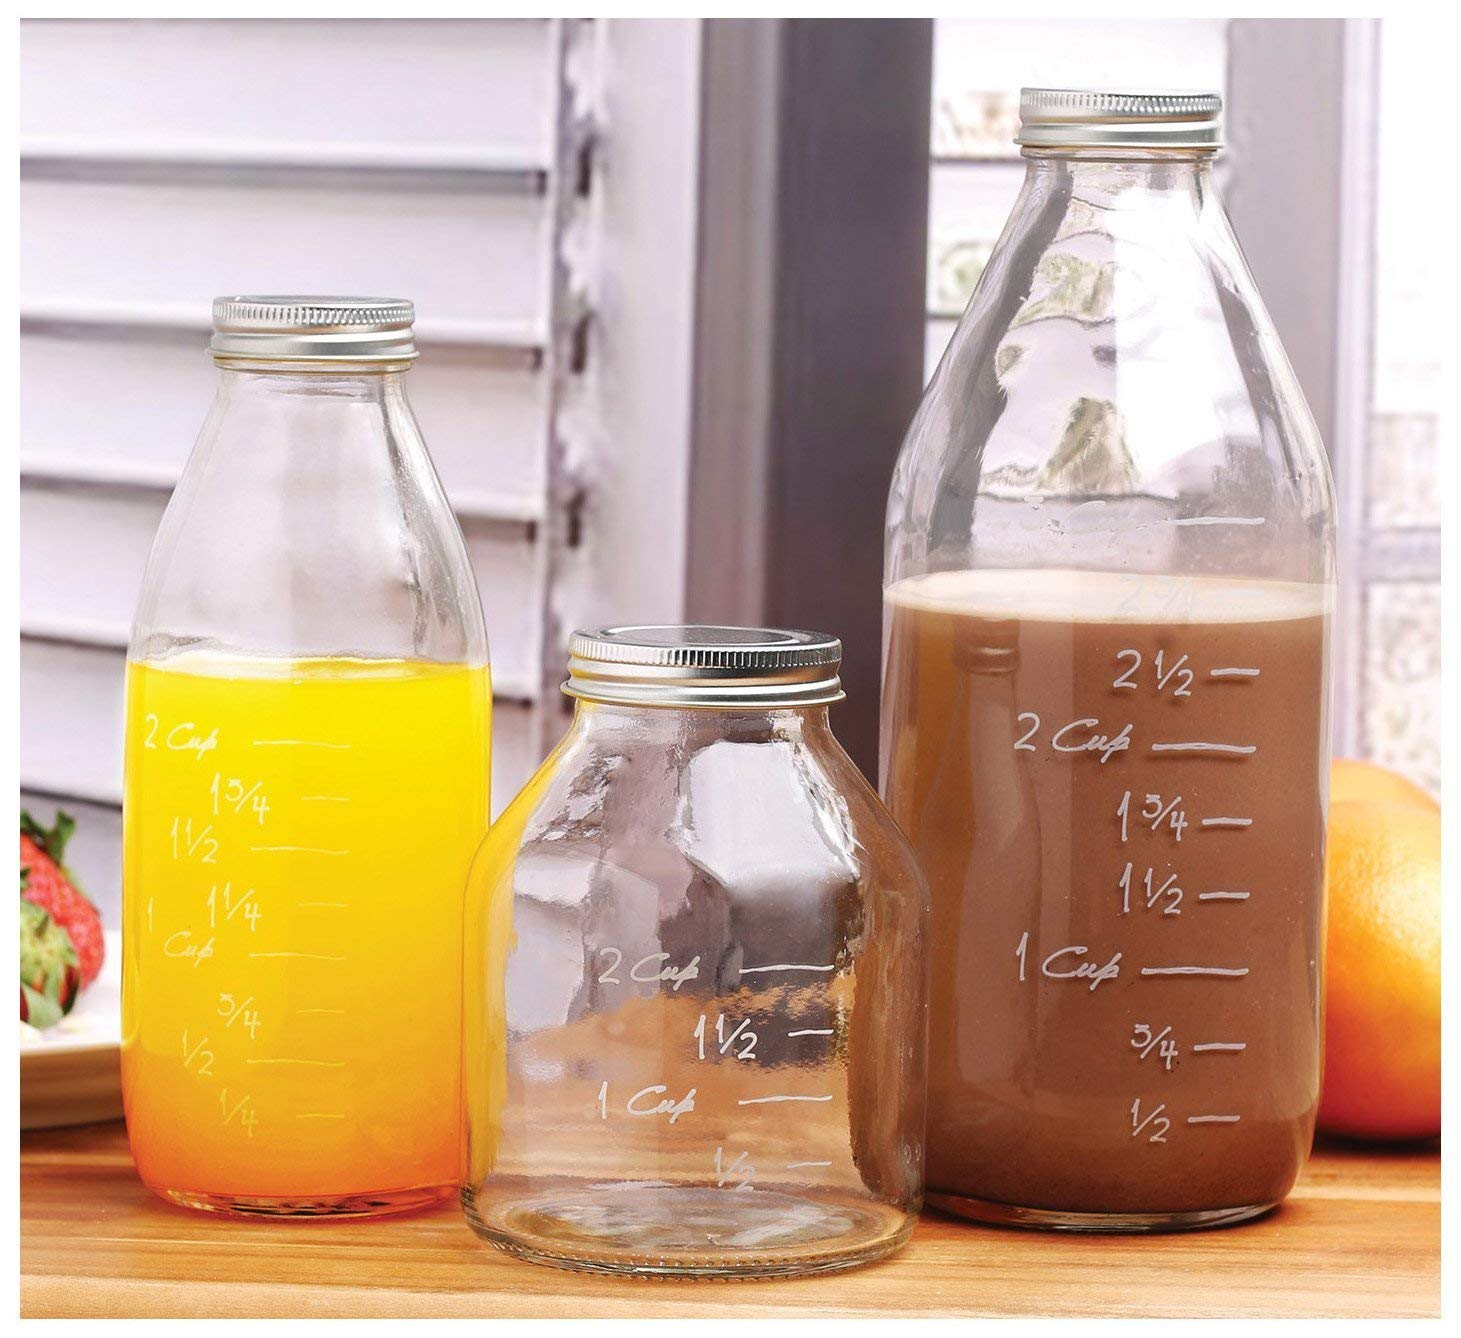 Durable Glass Milk Bottles with Embossed Capacity Measuring Marks, With Metal Twist Lids, Clear Vintage Style Dairy Bottle, Beverage Glassware and Drinkware for Parties, BBQ, Picnics. 33/17/17 oz